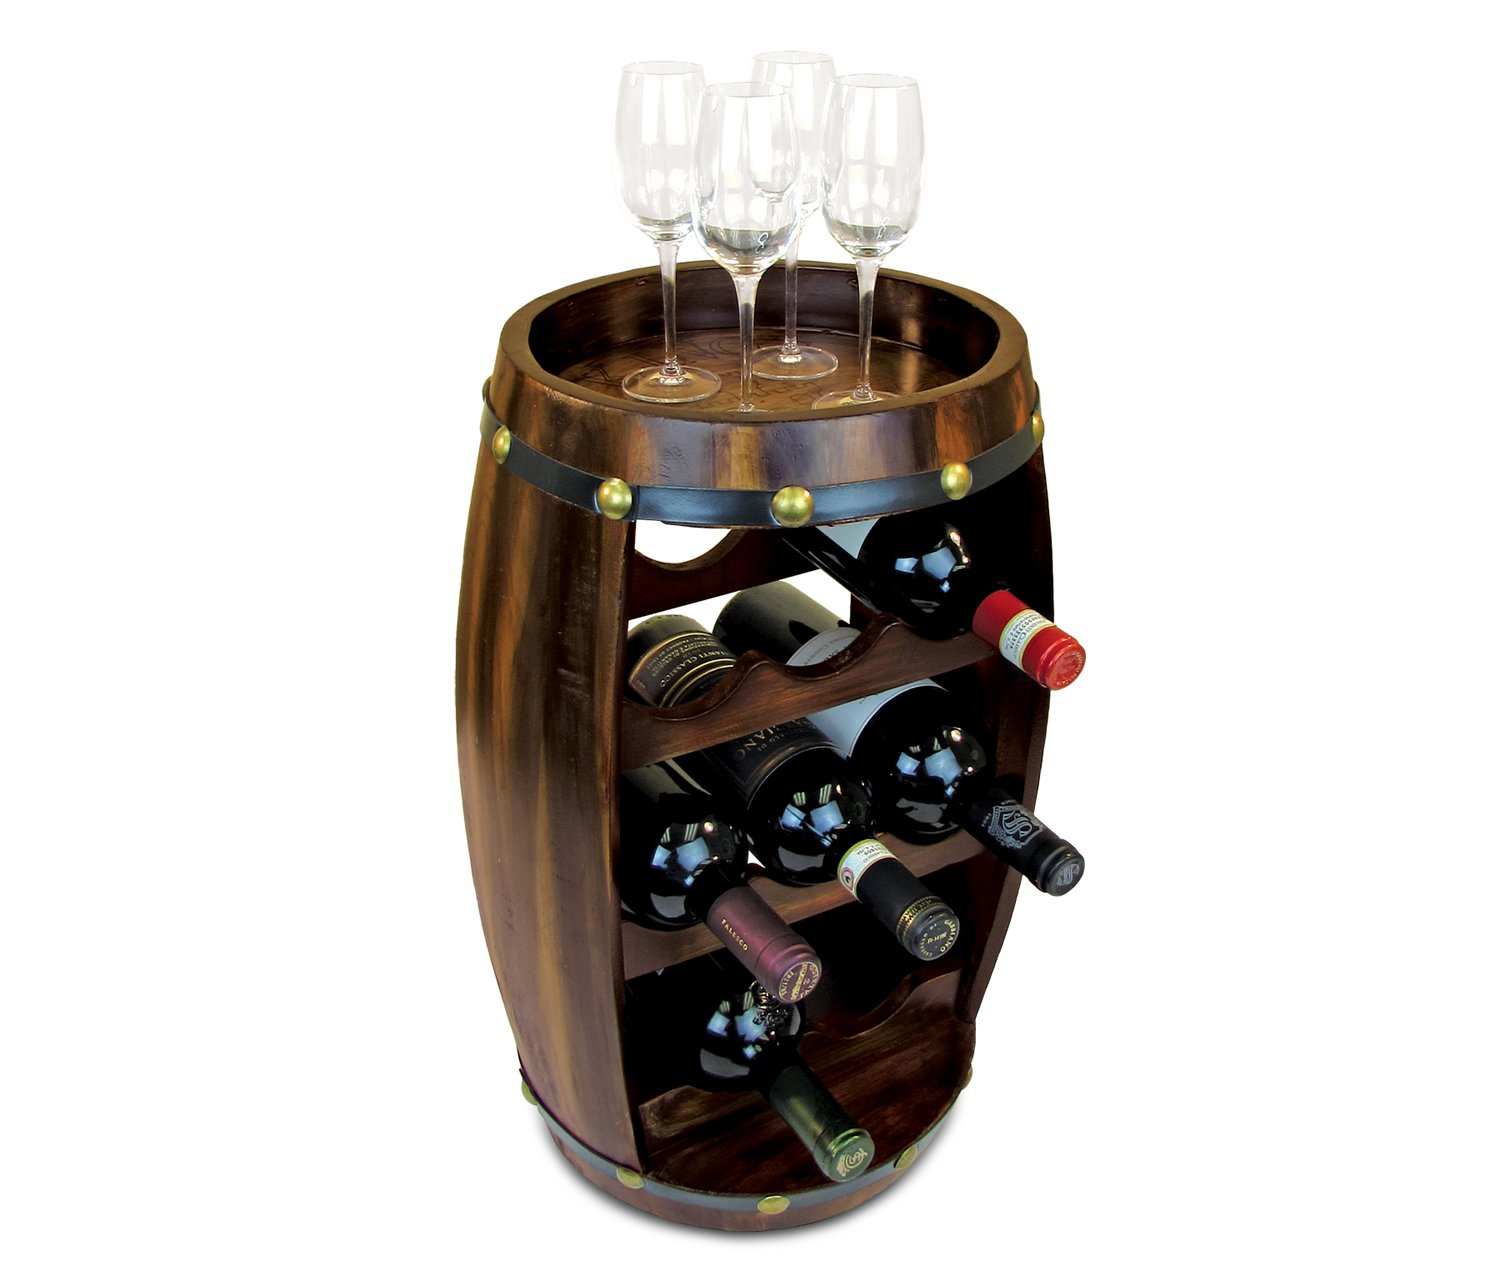 "Wine Rack Freestanding Wooden Barrel Shape Hold 8 Bottles - Wine Décor Holder Storage Furniture Accessory 19.3""x10.4"" For Home, Kitchen, Bar, Living Room - Counter Top or Floor Stand - Alexander #9420 Puzzled Inc. Alexander2017"